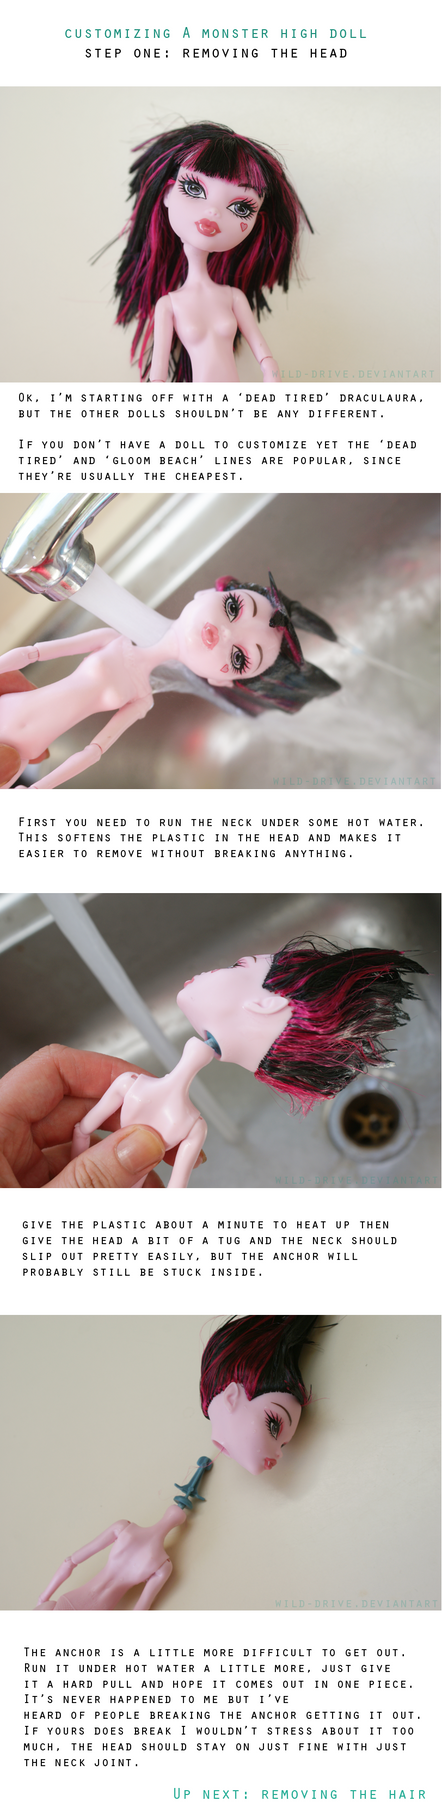 Customizing a MH Doll : Step One by wild-drive